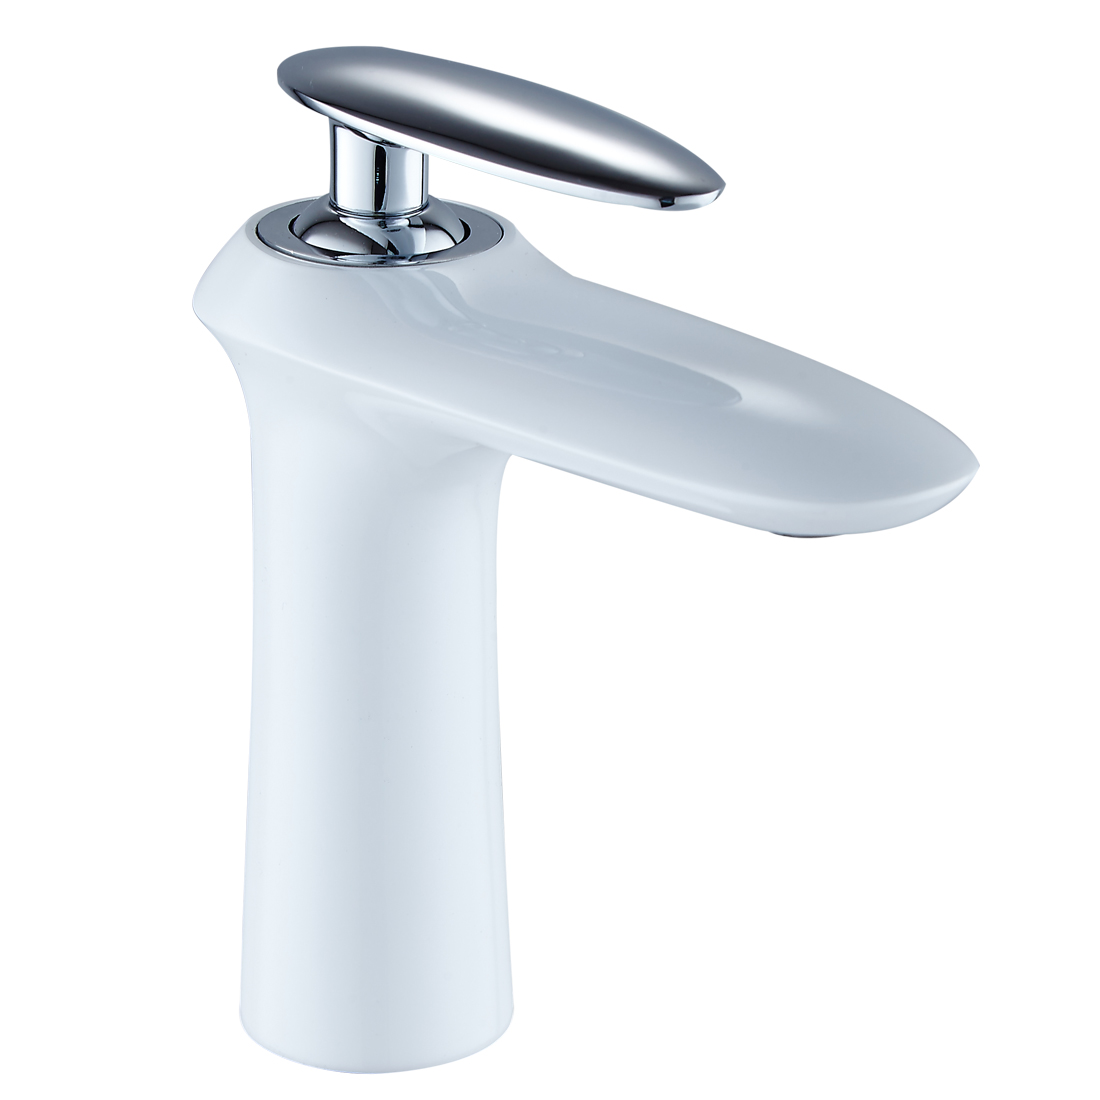 FLG White and Chrome Bathroom Bathroom Faucet